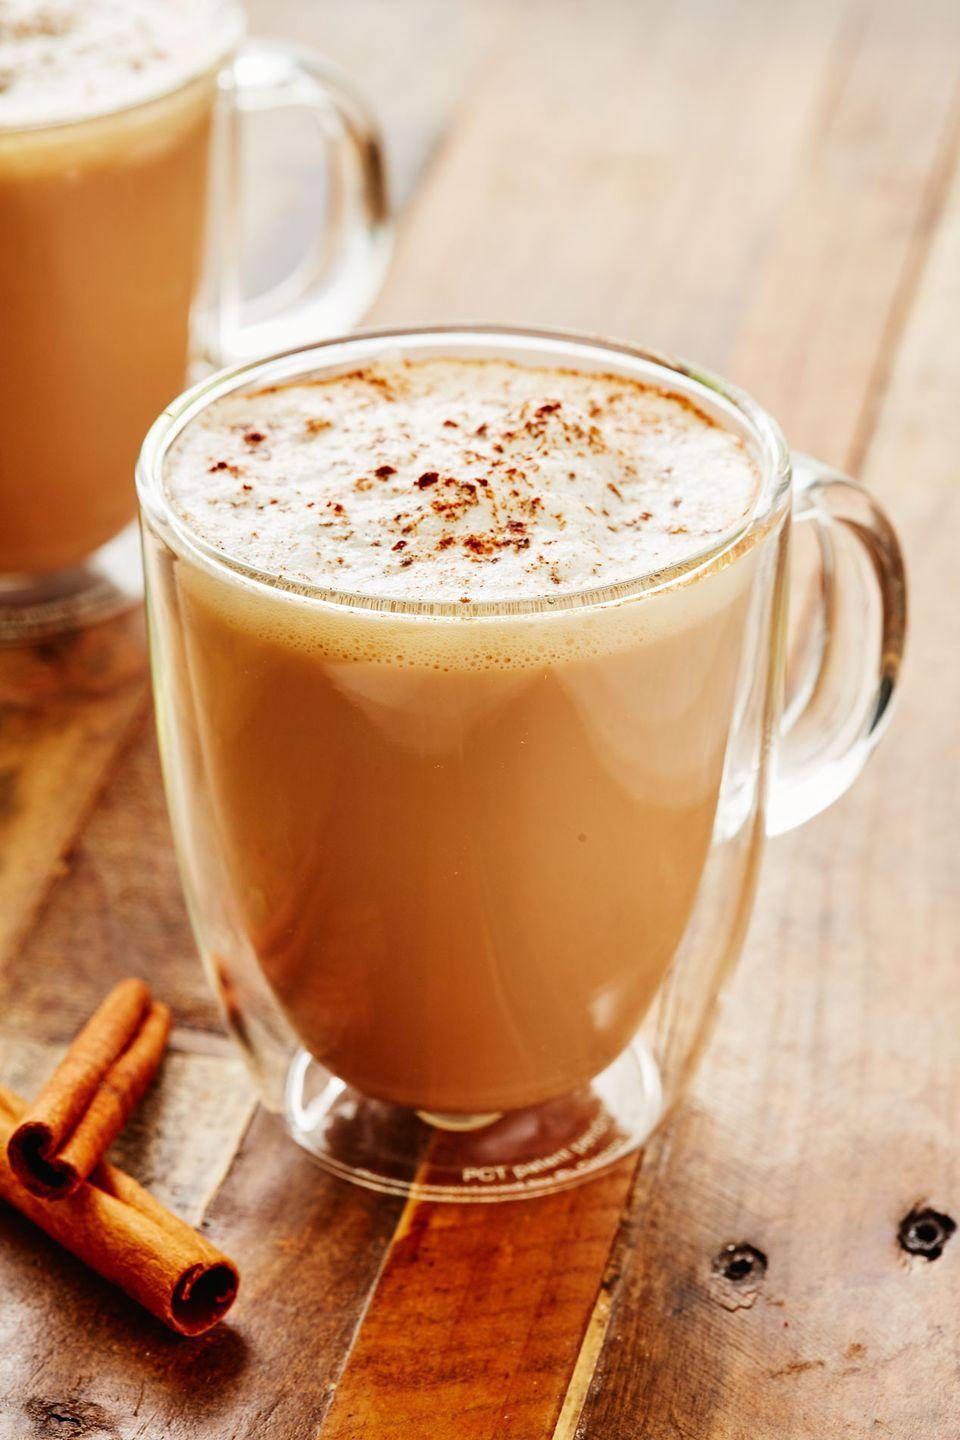 "<p>Save your Starbucks money.</p><p>Get the recipe from <a href=""https://www.delish.com/cooking/recipe-ideas/a28899368/how-to-make-chai-latte-recipe/"" rel=""nofollow noopener"" target=""_blank"" data-ylk=""slk:Delish"" class=""link rapid-noclick-resp"">Delish</a>.</p>"